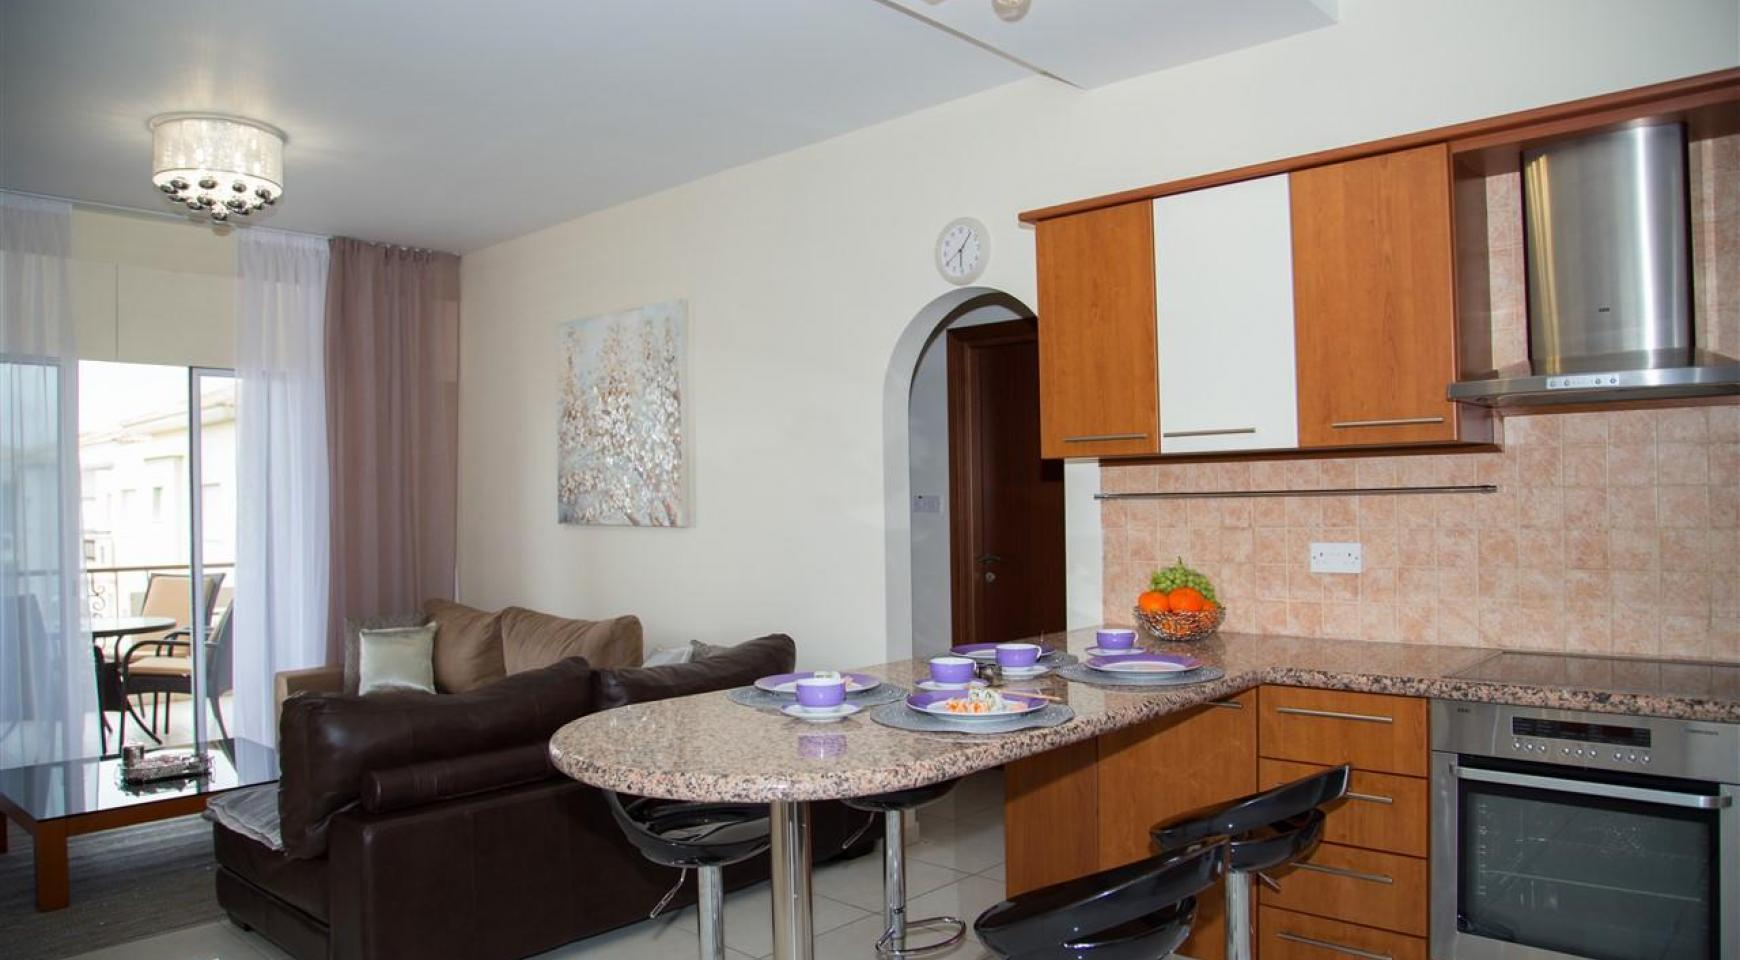 Luxury 2 Bedroom Apartment Mesogios Iris 304 in the Tourist area near the Beach - 11